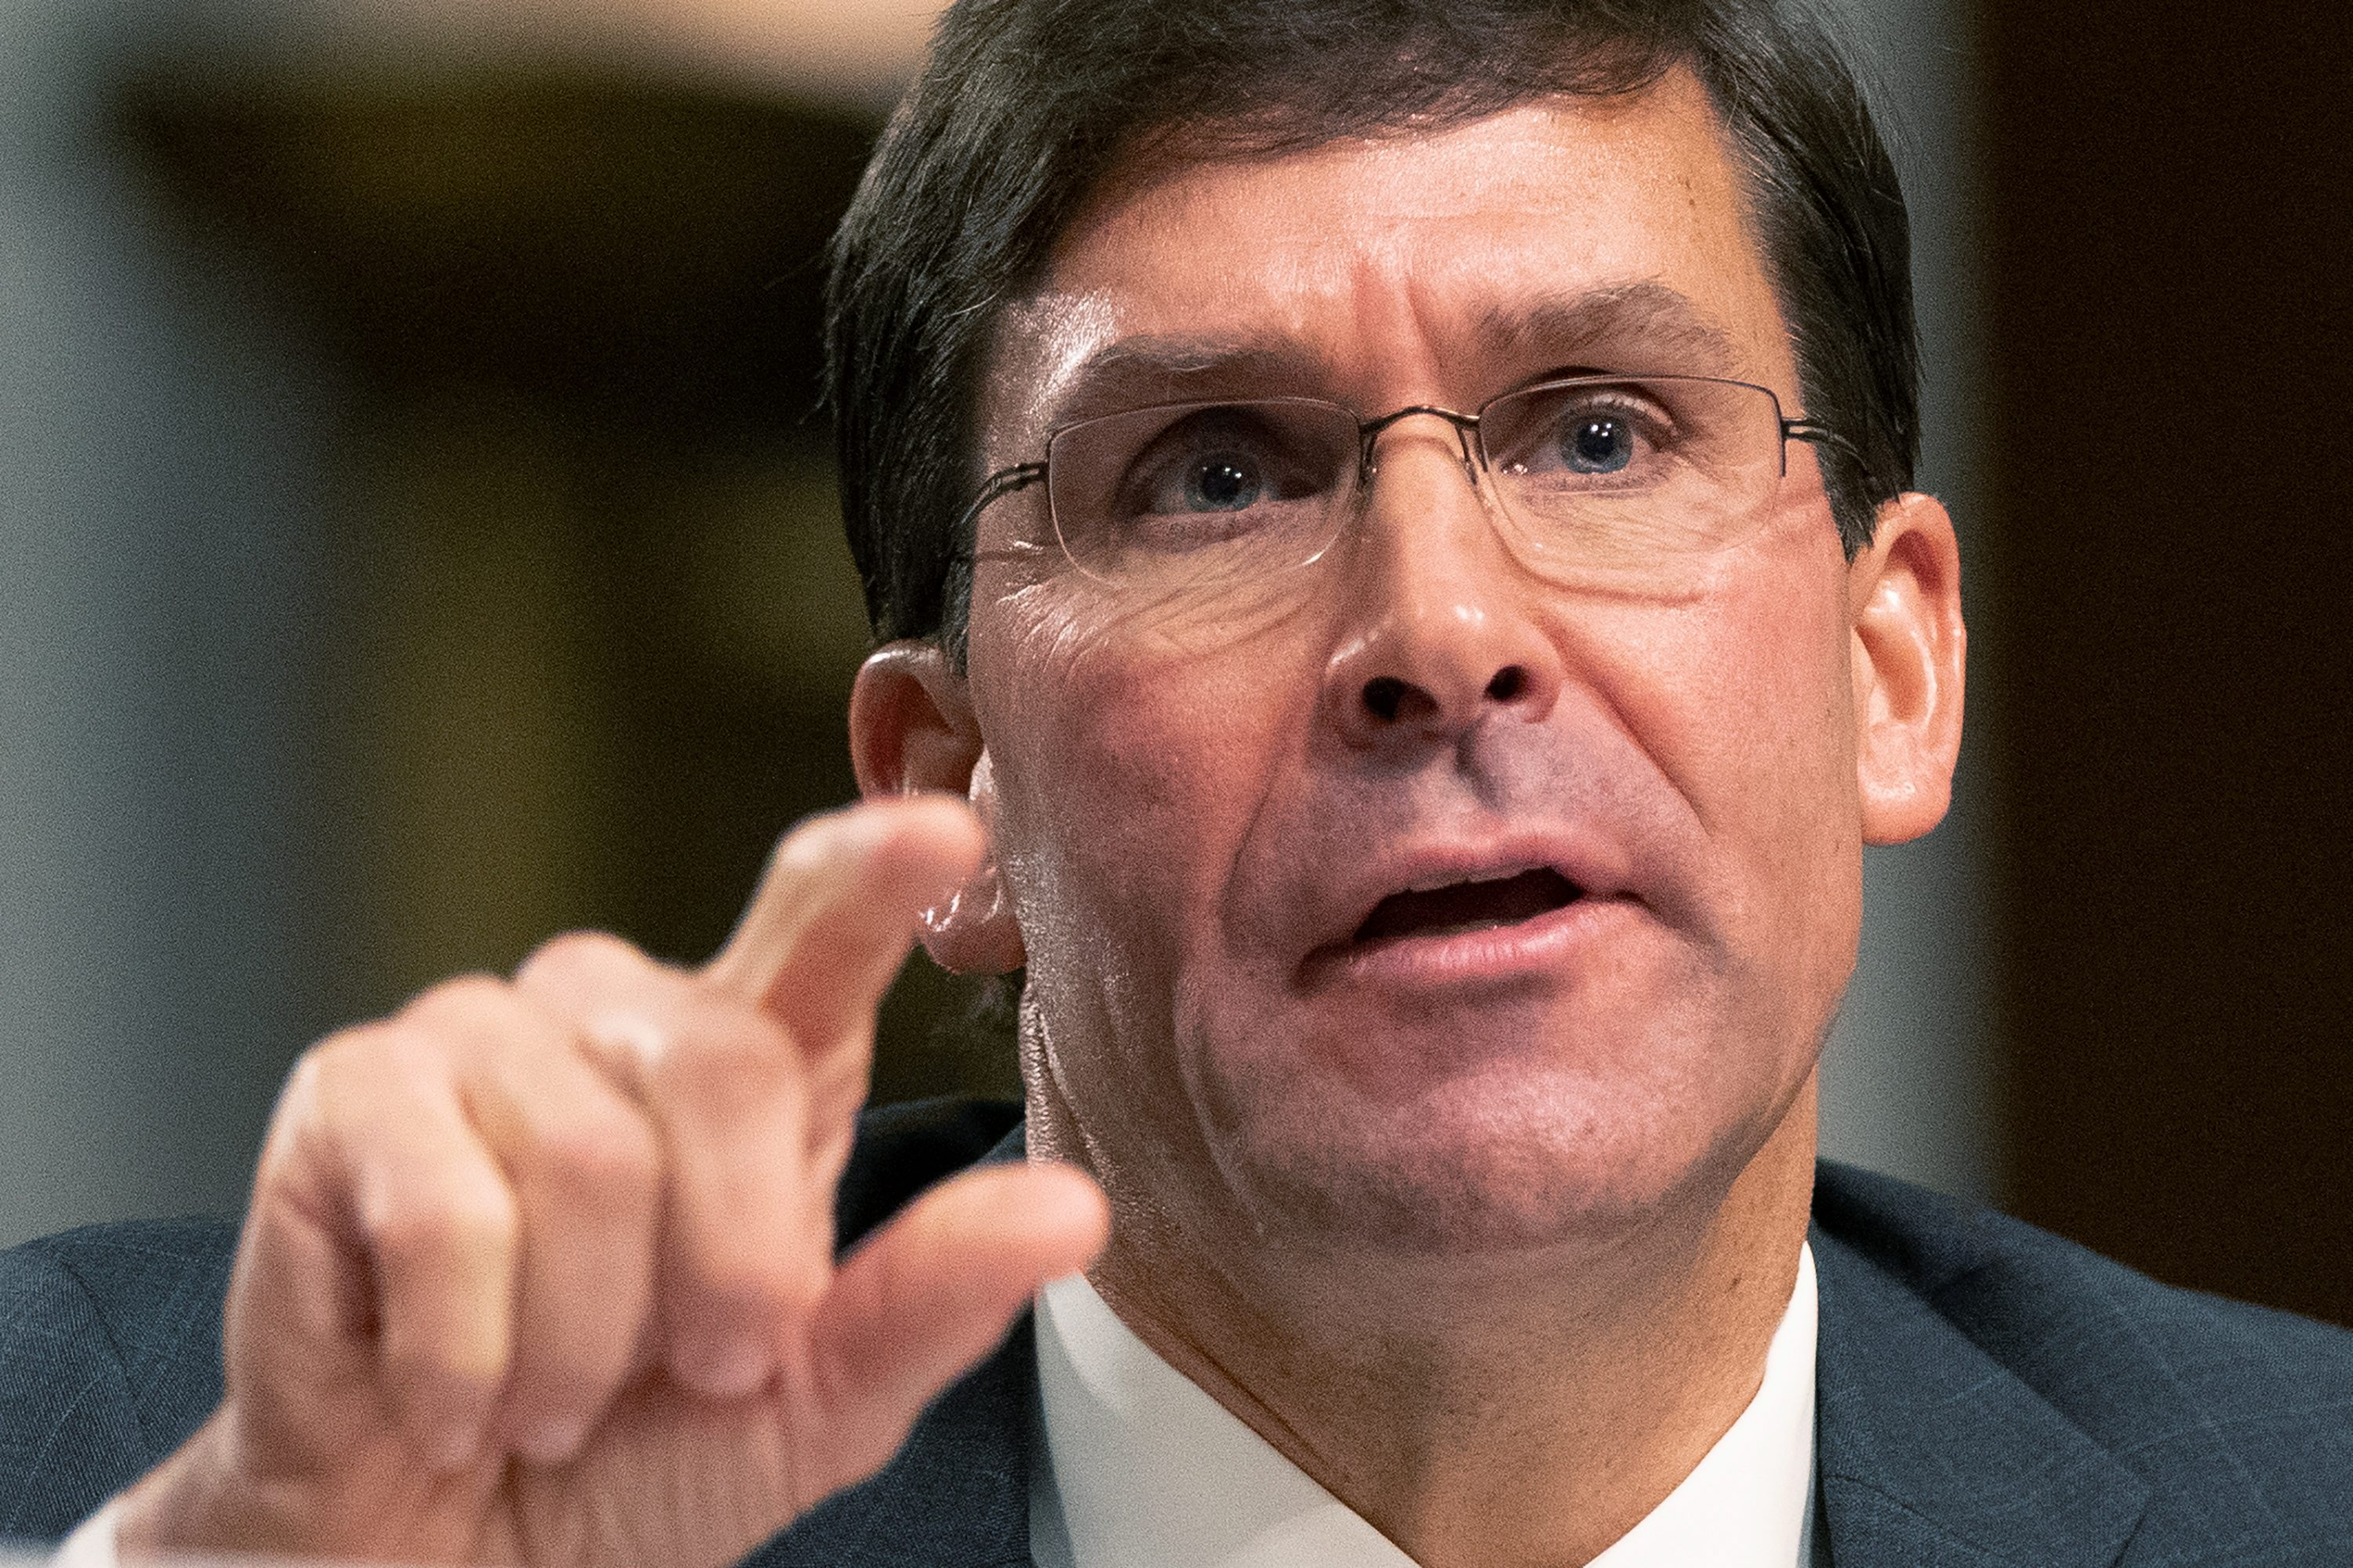 Mark Esper seen as on the fast track to secretary of defense position